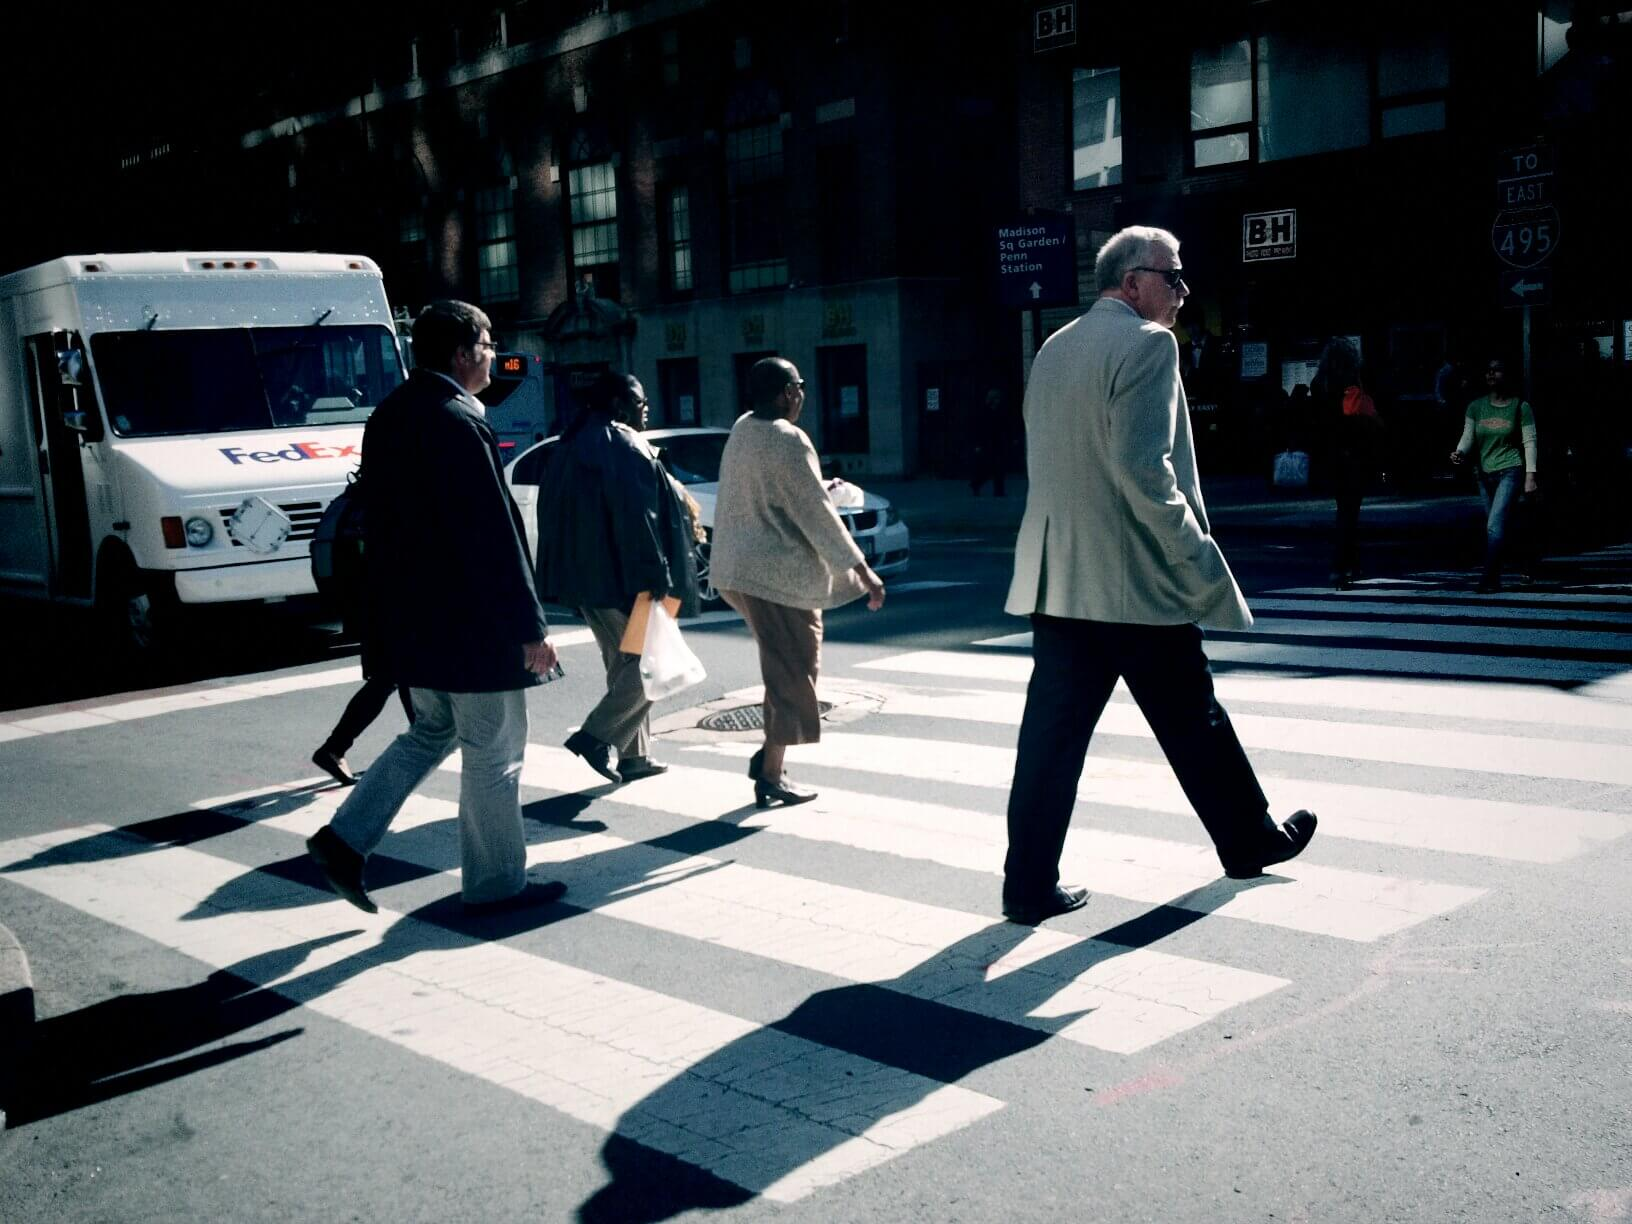 People crossing crosswalk in Manhattan